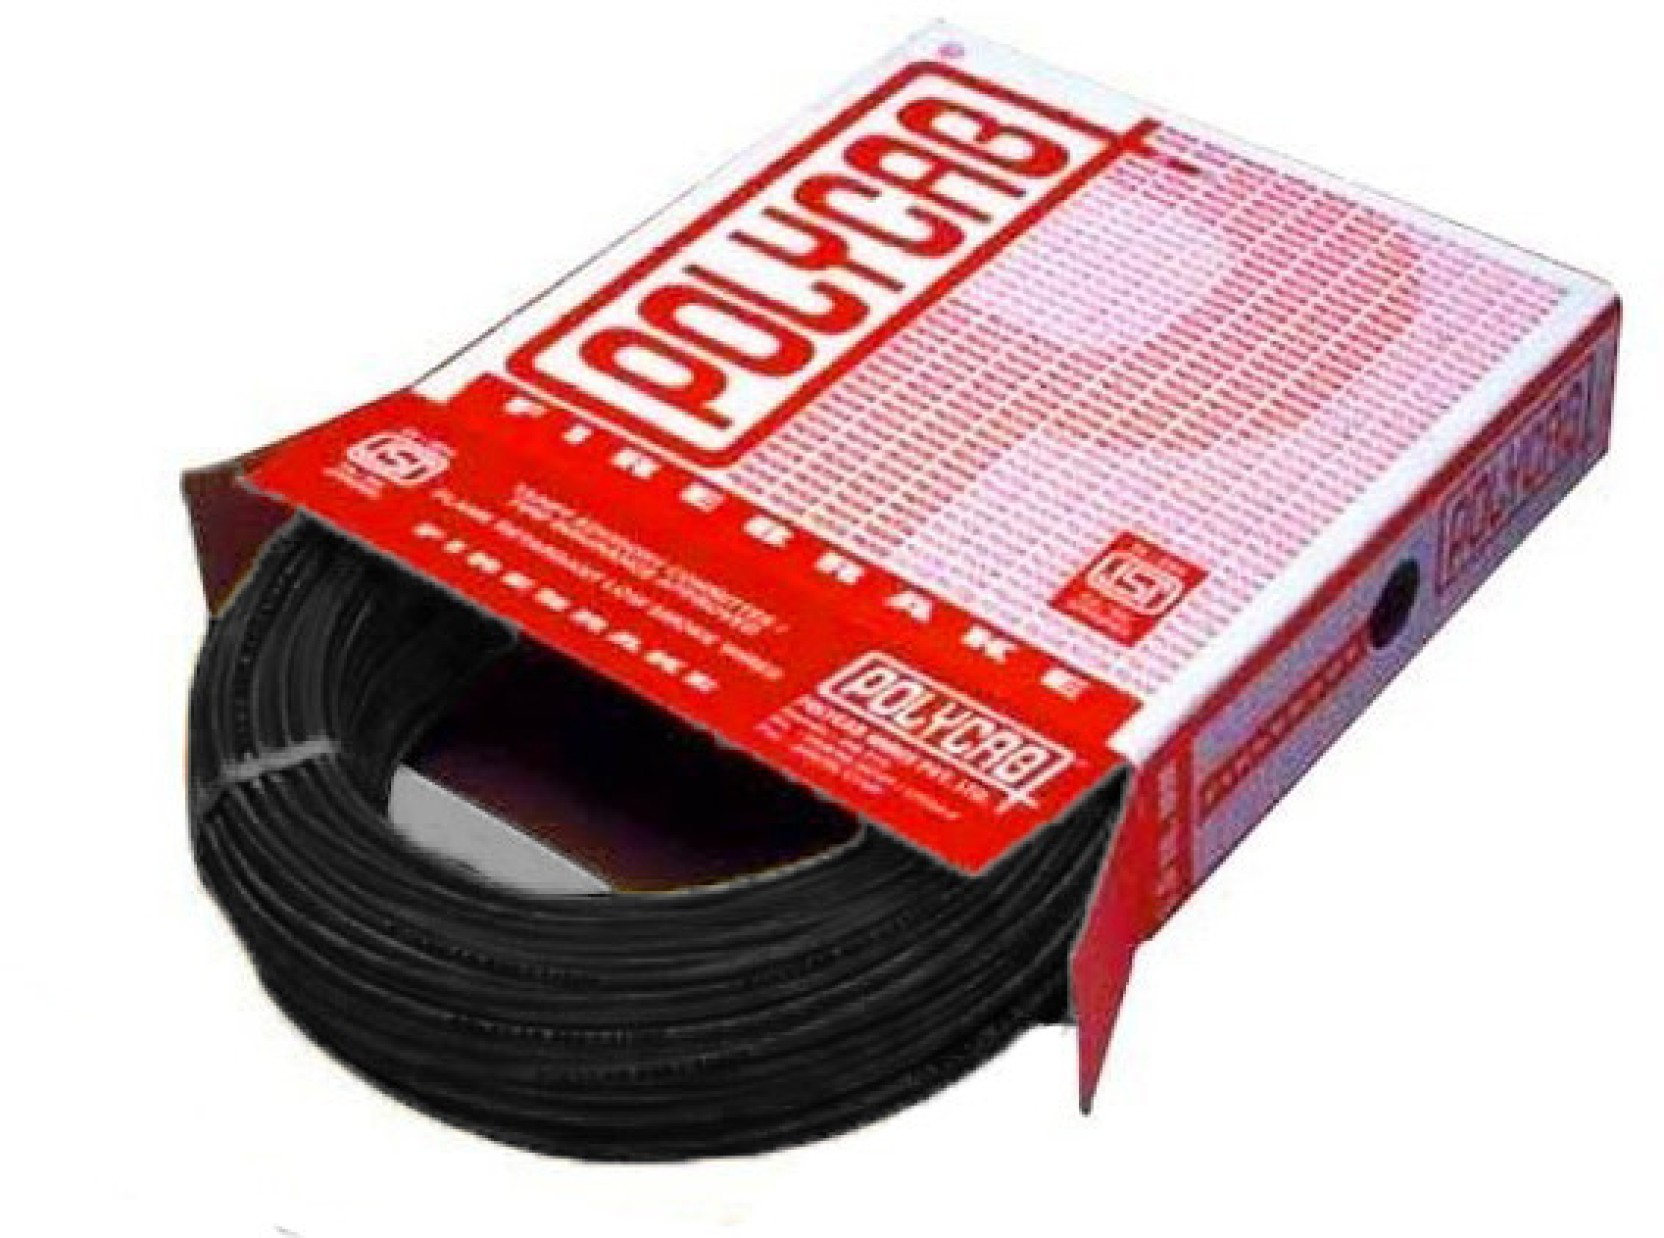 Polycab Fr Pvc 25 Sq Mm Black 90 M Wire Price In India Buy House Wiring Cable Colors Add To Cart